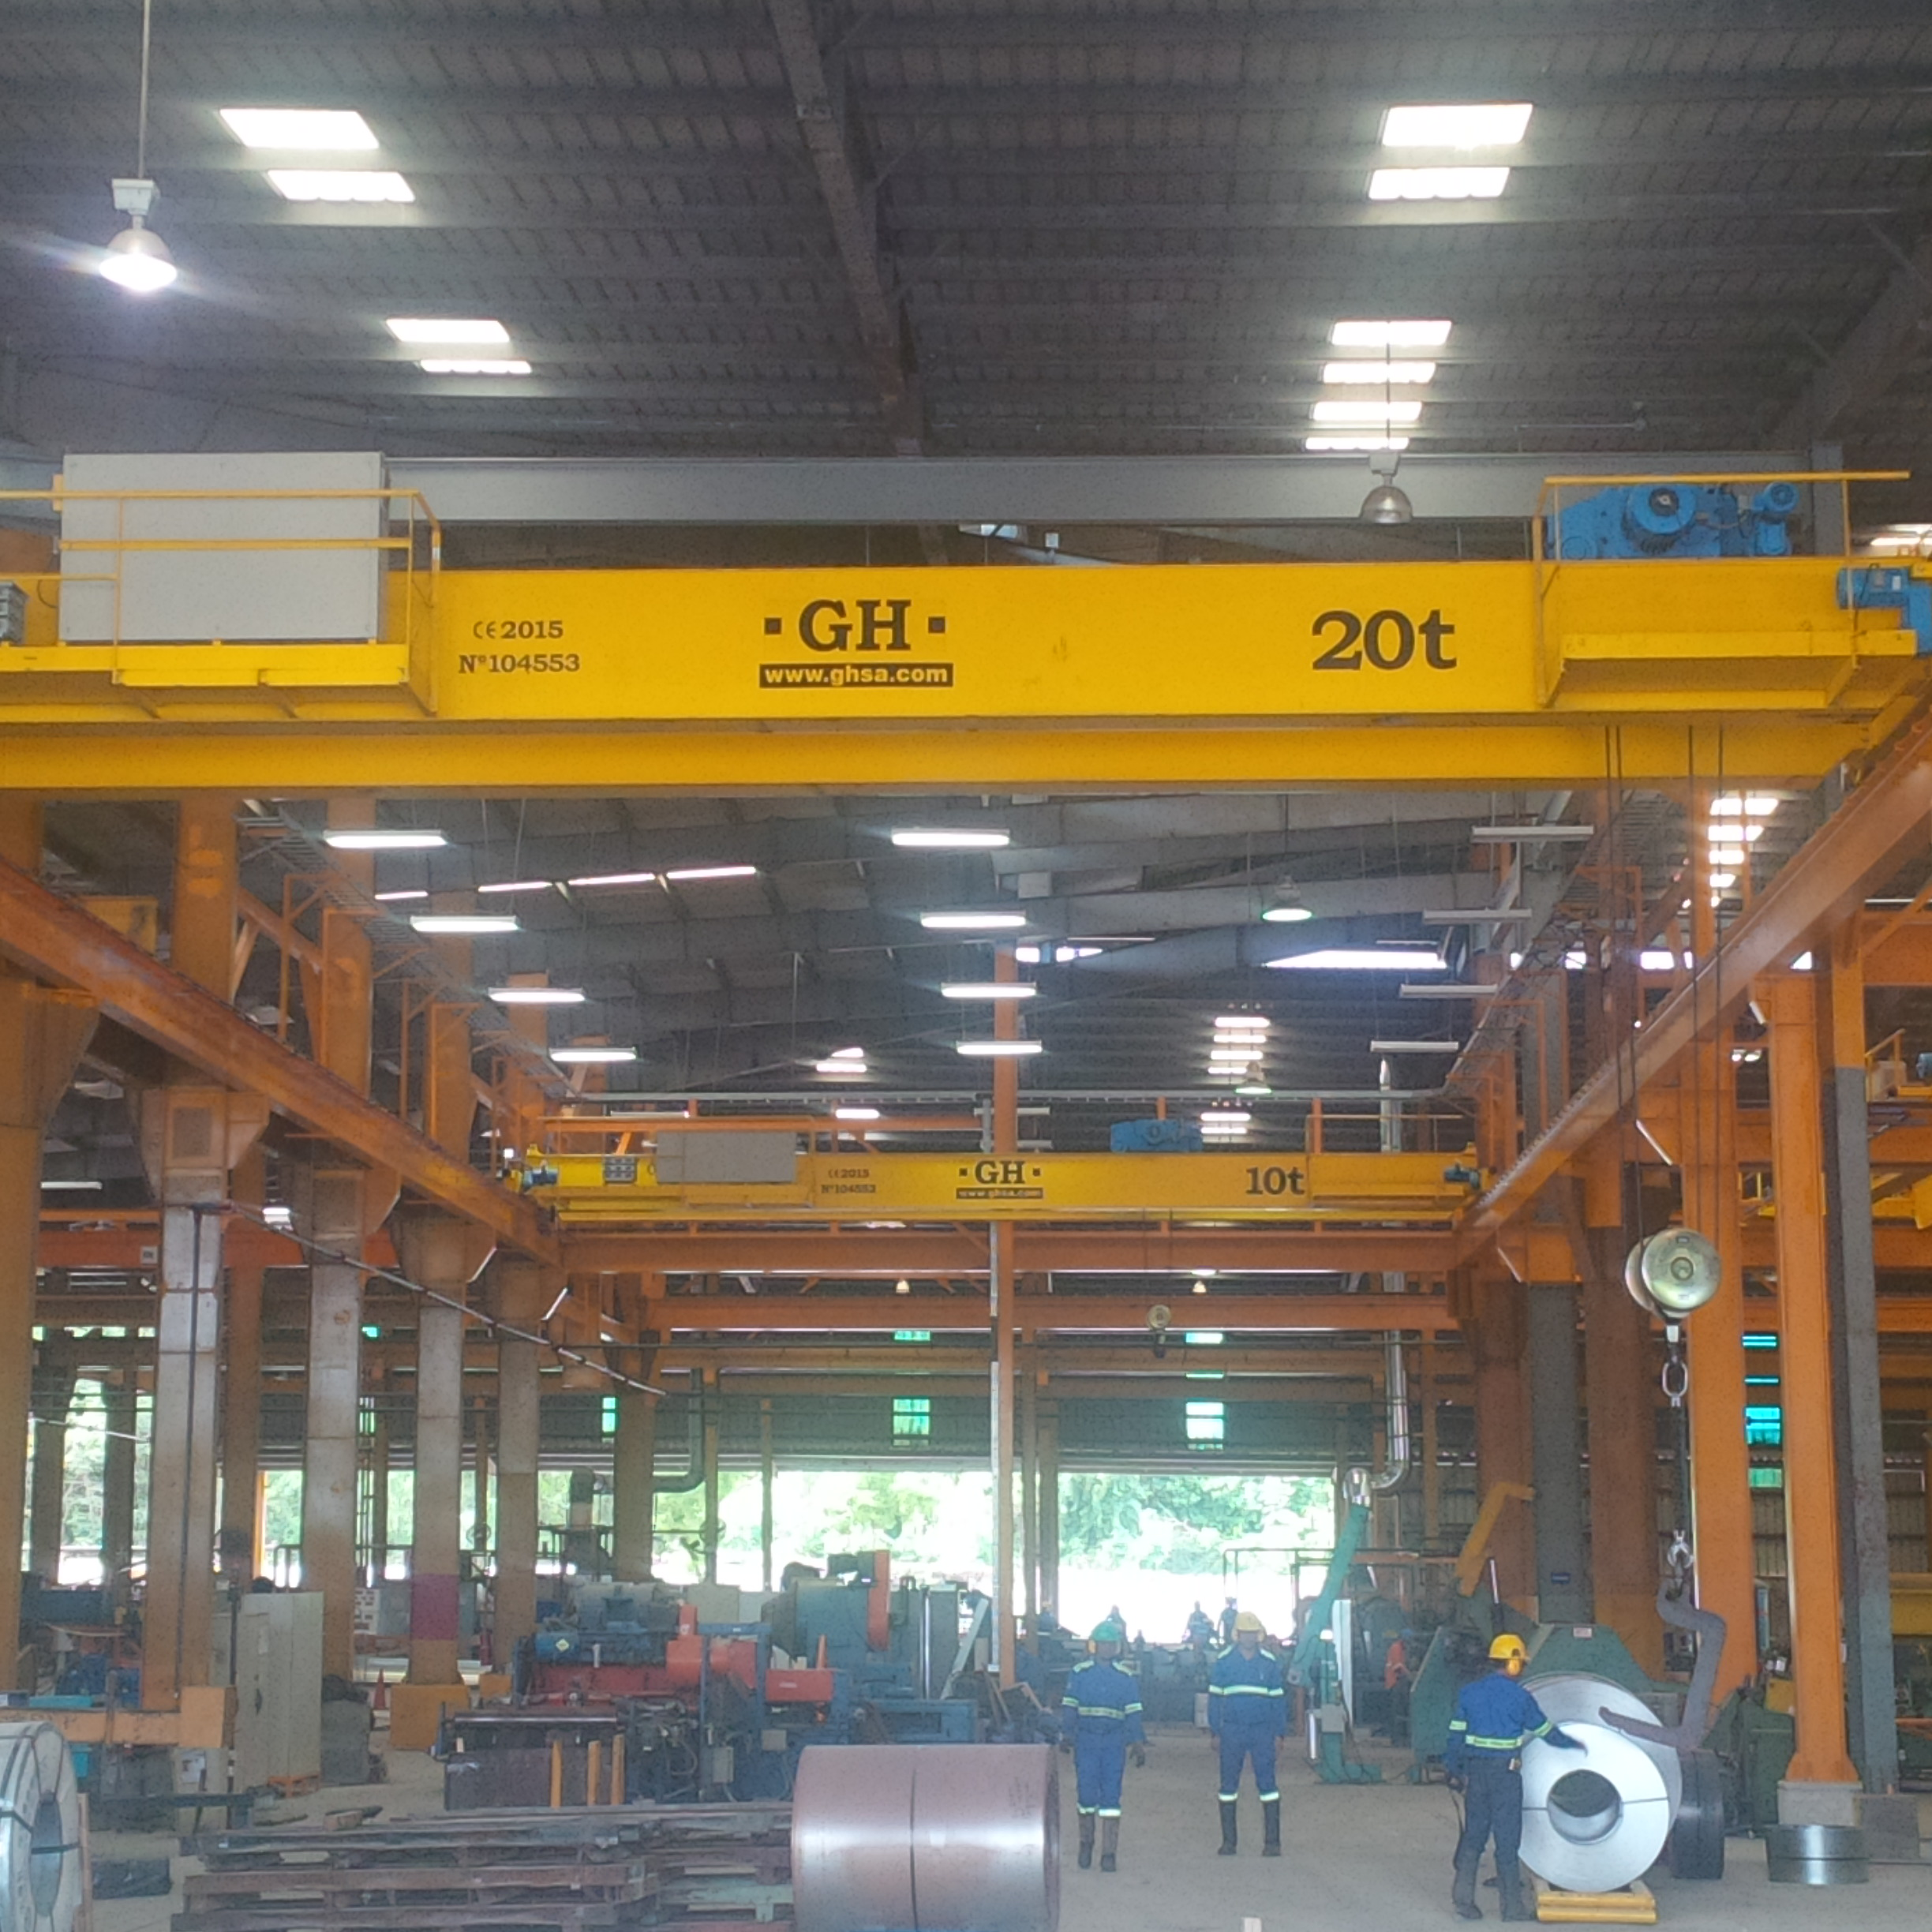 Cranes assembled in the steelwork GERDAU METALDOM in Dominican Republic.